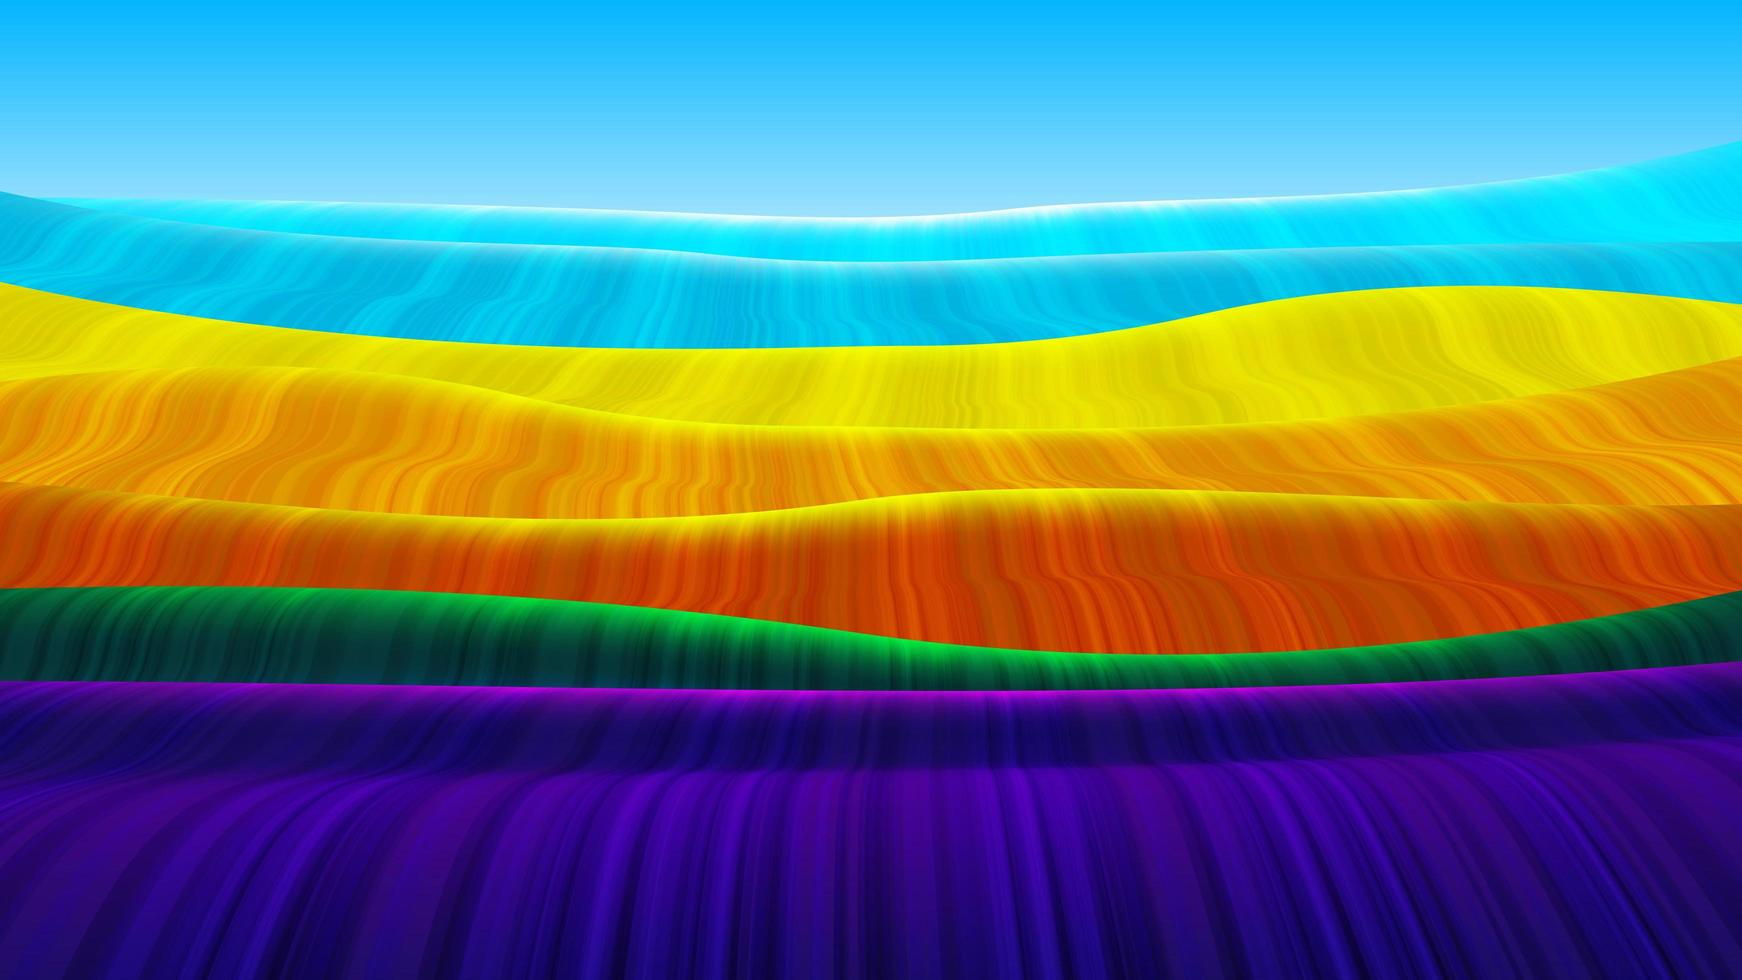 Abstract Rainbow Flowing Wave Pattern vector